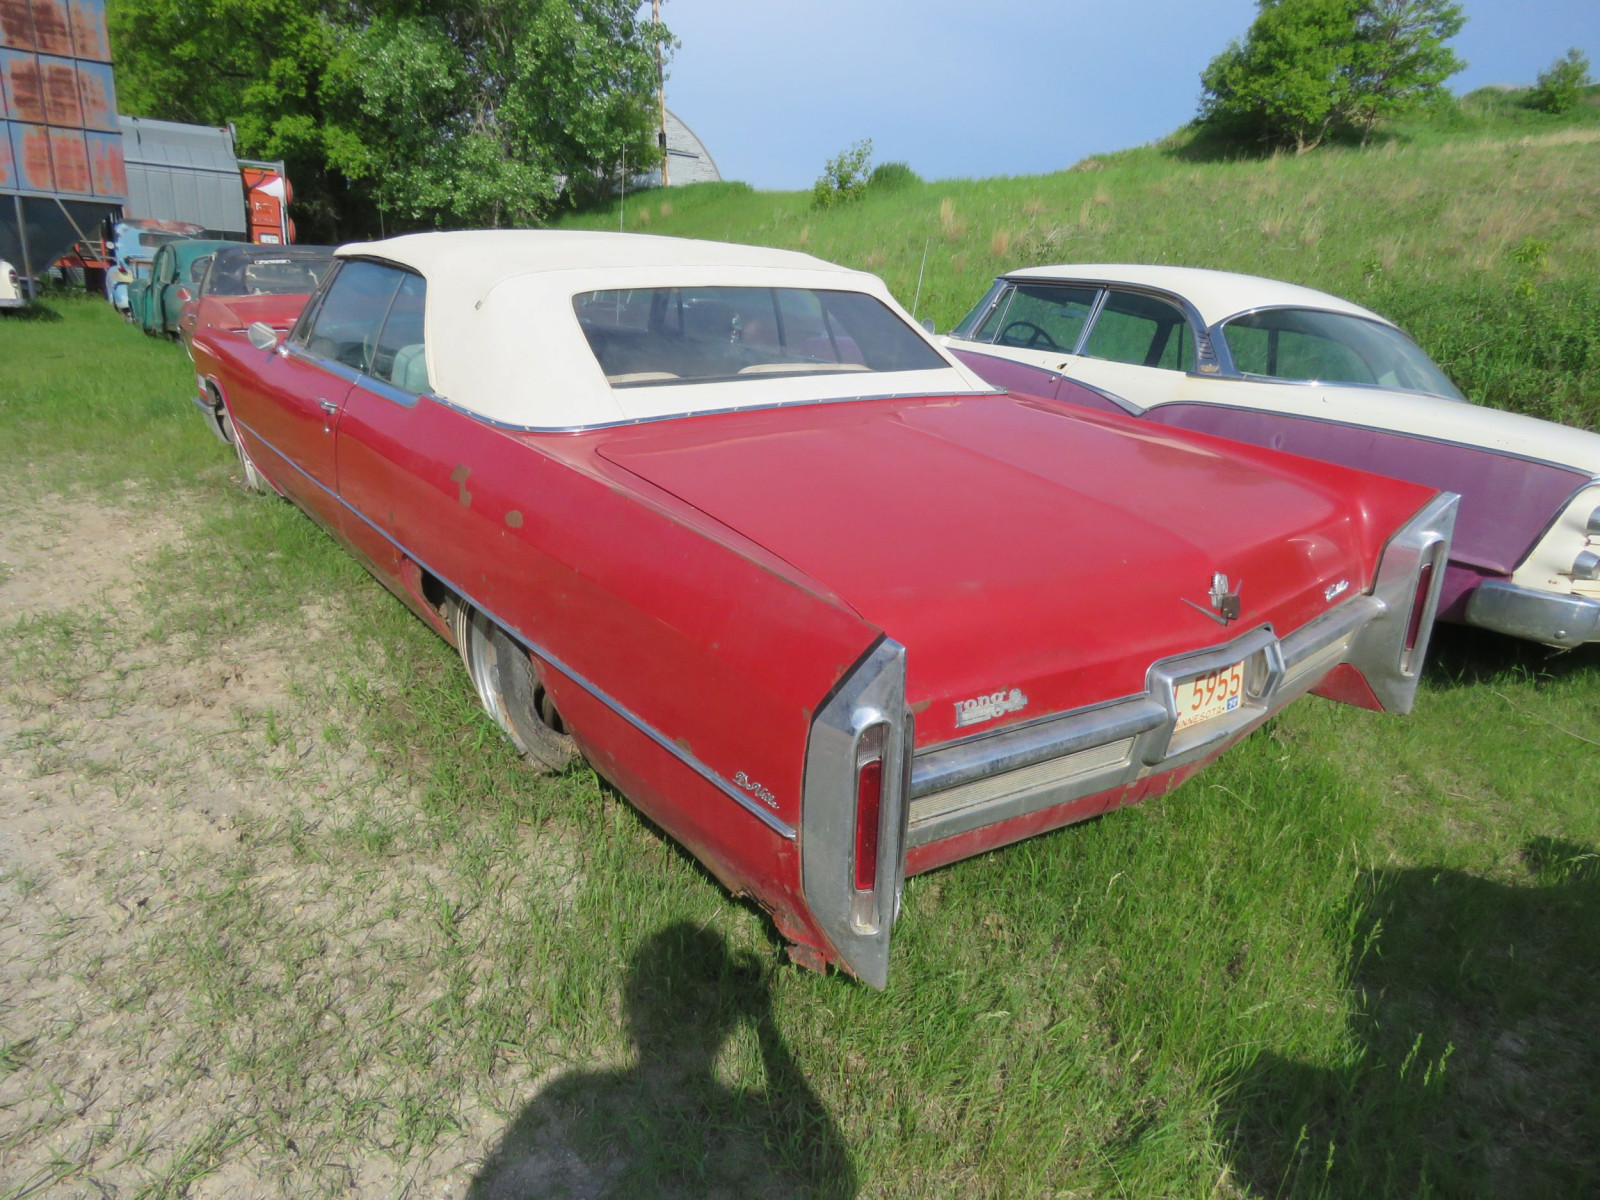 1961 Cadillac Deville Convertible F6122546 - Image 4